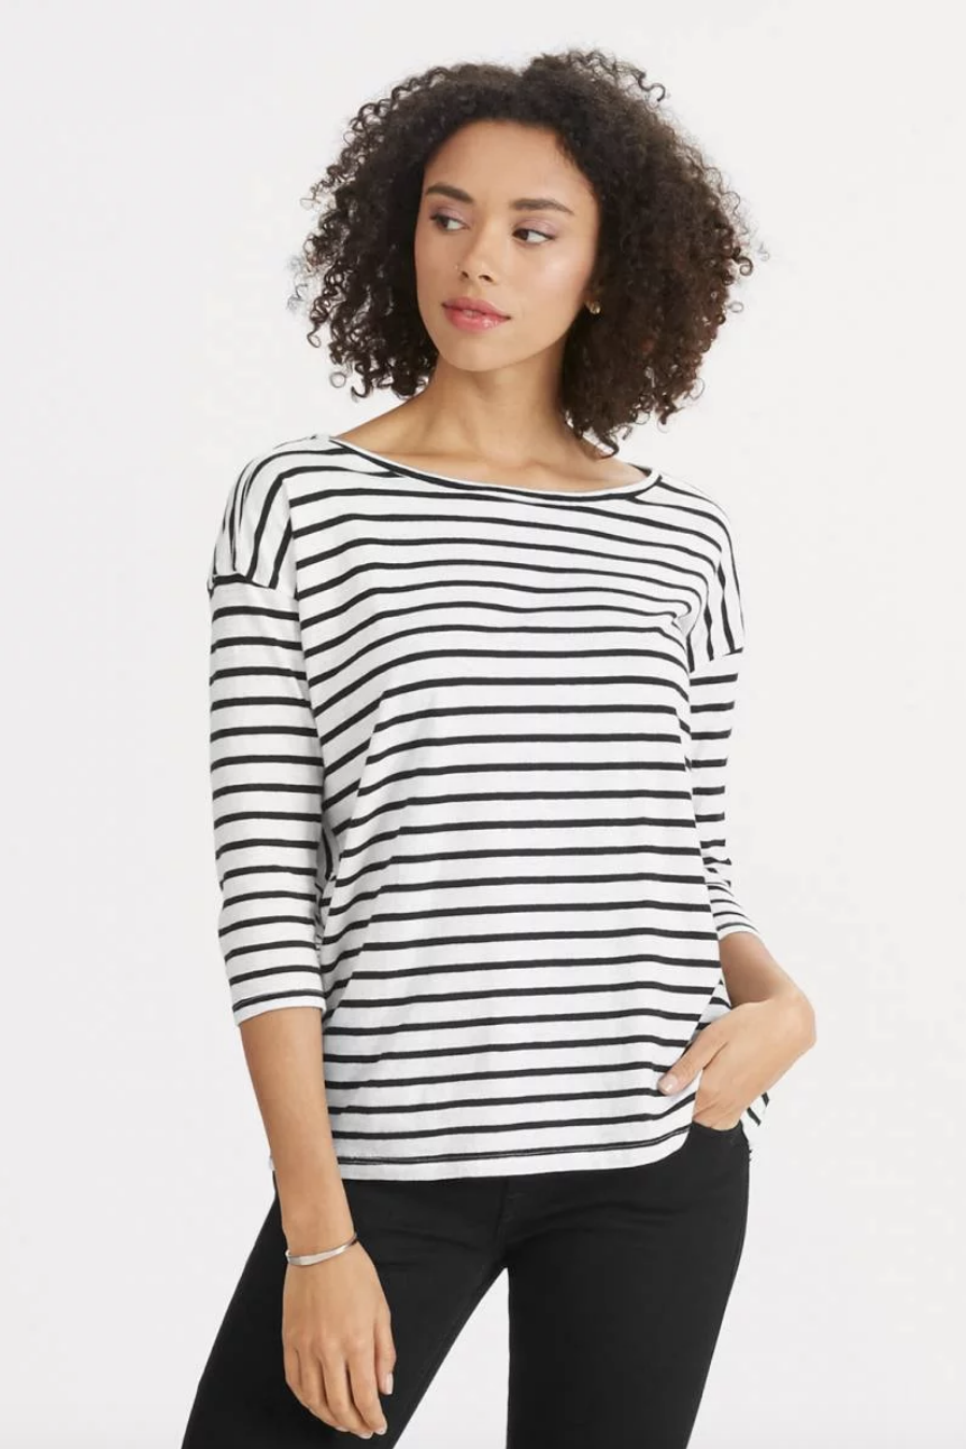 Nau - Basis LS Boatneck Shirt - Caviar Stripe - Front